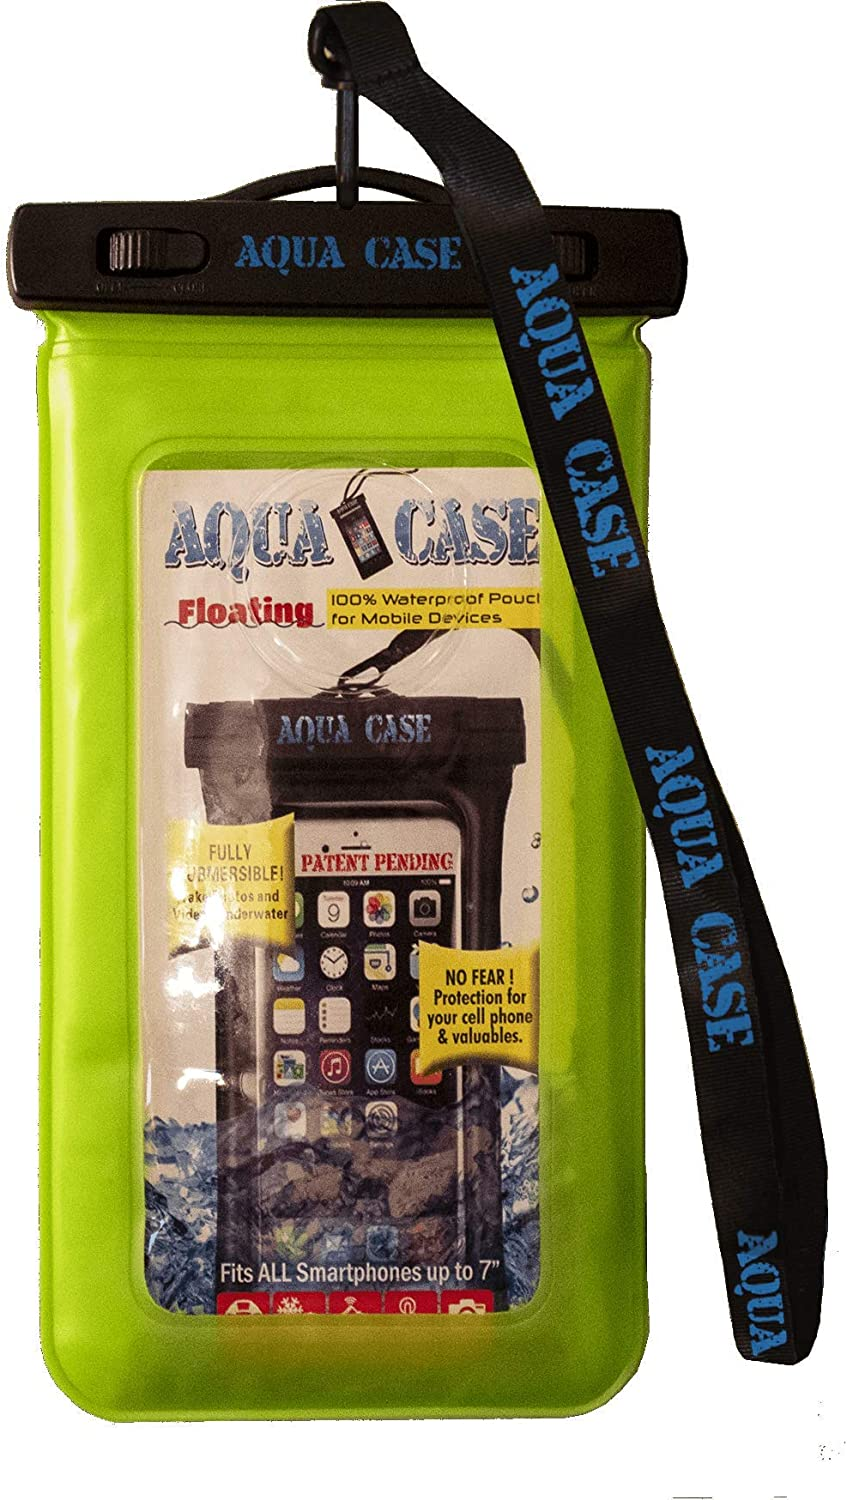 AQUA CASE Plus (Green) - Floating 100% Waterproof Cell Phone case Dry Bag Pouch Universal Size for iPhone 11 pro Max XS XR X 8 7 6S Plus Galaxy S20+ S10 S9 S8 Note/Edge